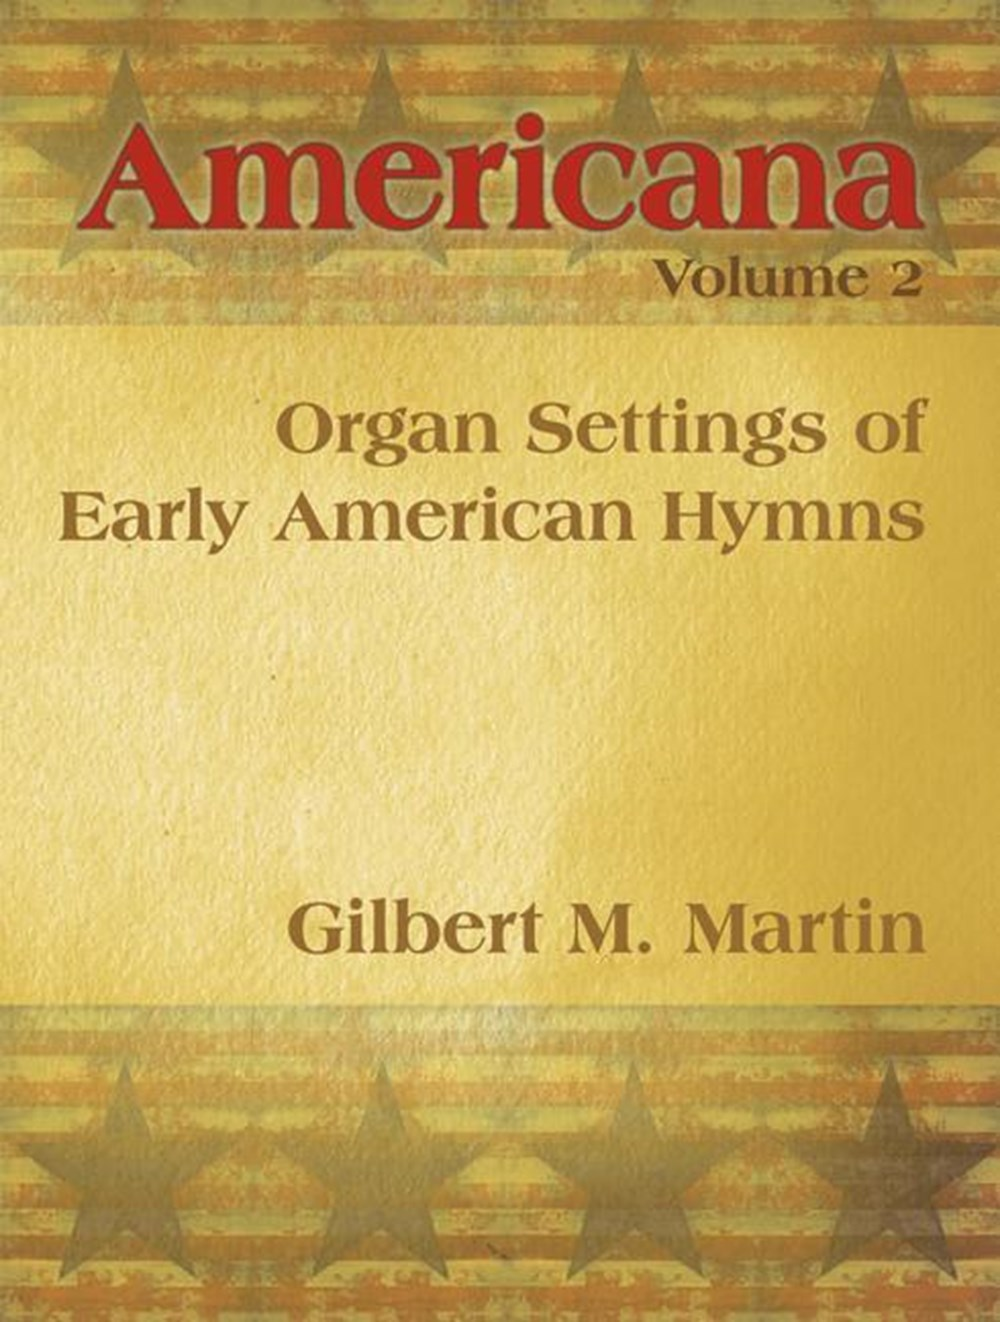 Americana, Volume 2 Organ Settings of Early American Hymns